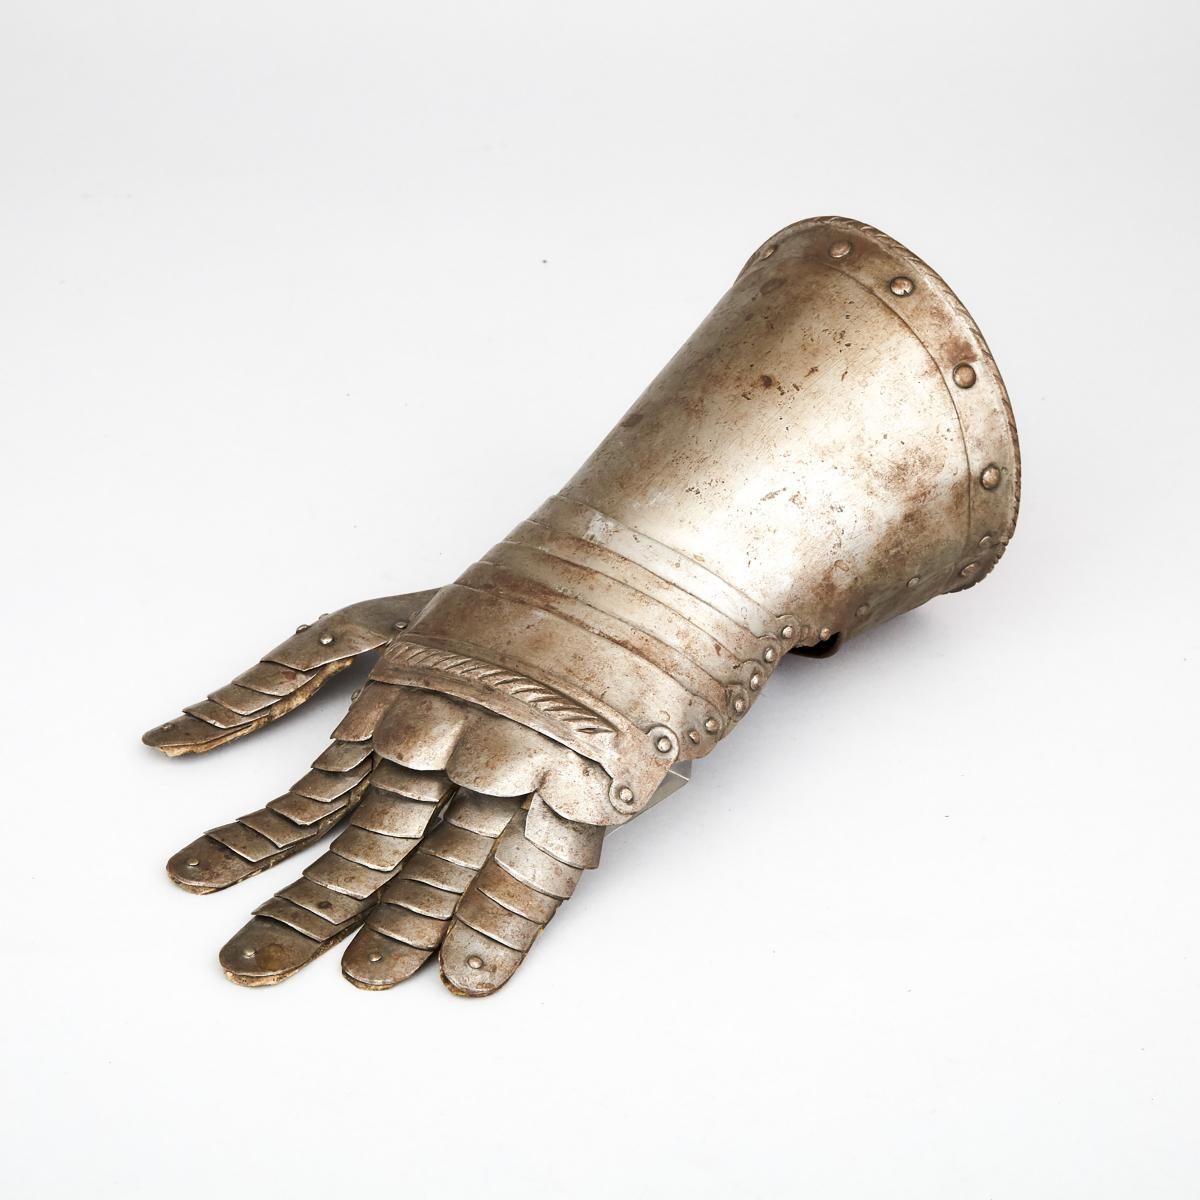 German Mid 16th century Style Left Hand Gauntlet, 19th century, length 12 in — 30.5 cm - Image 2 of 3